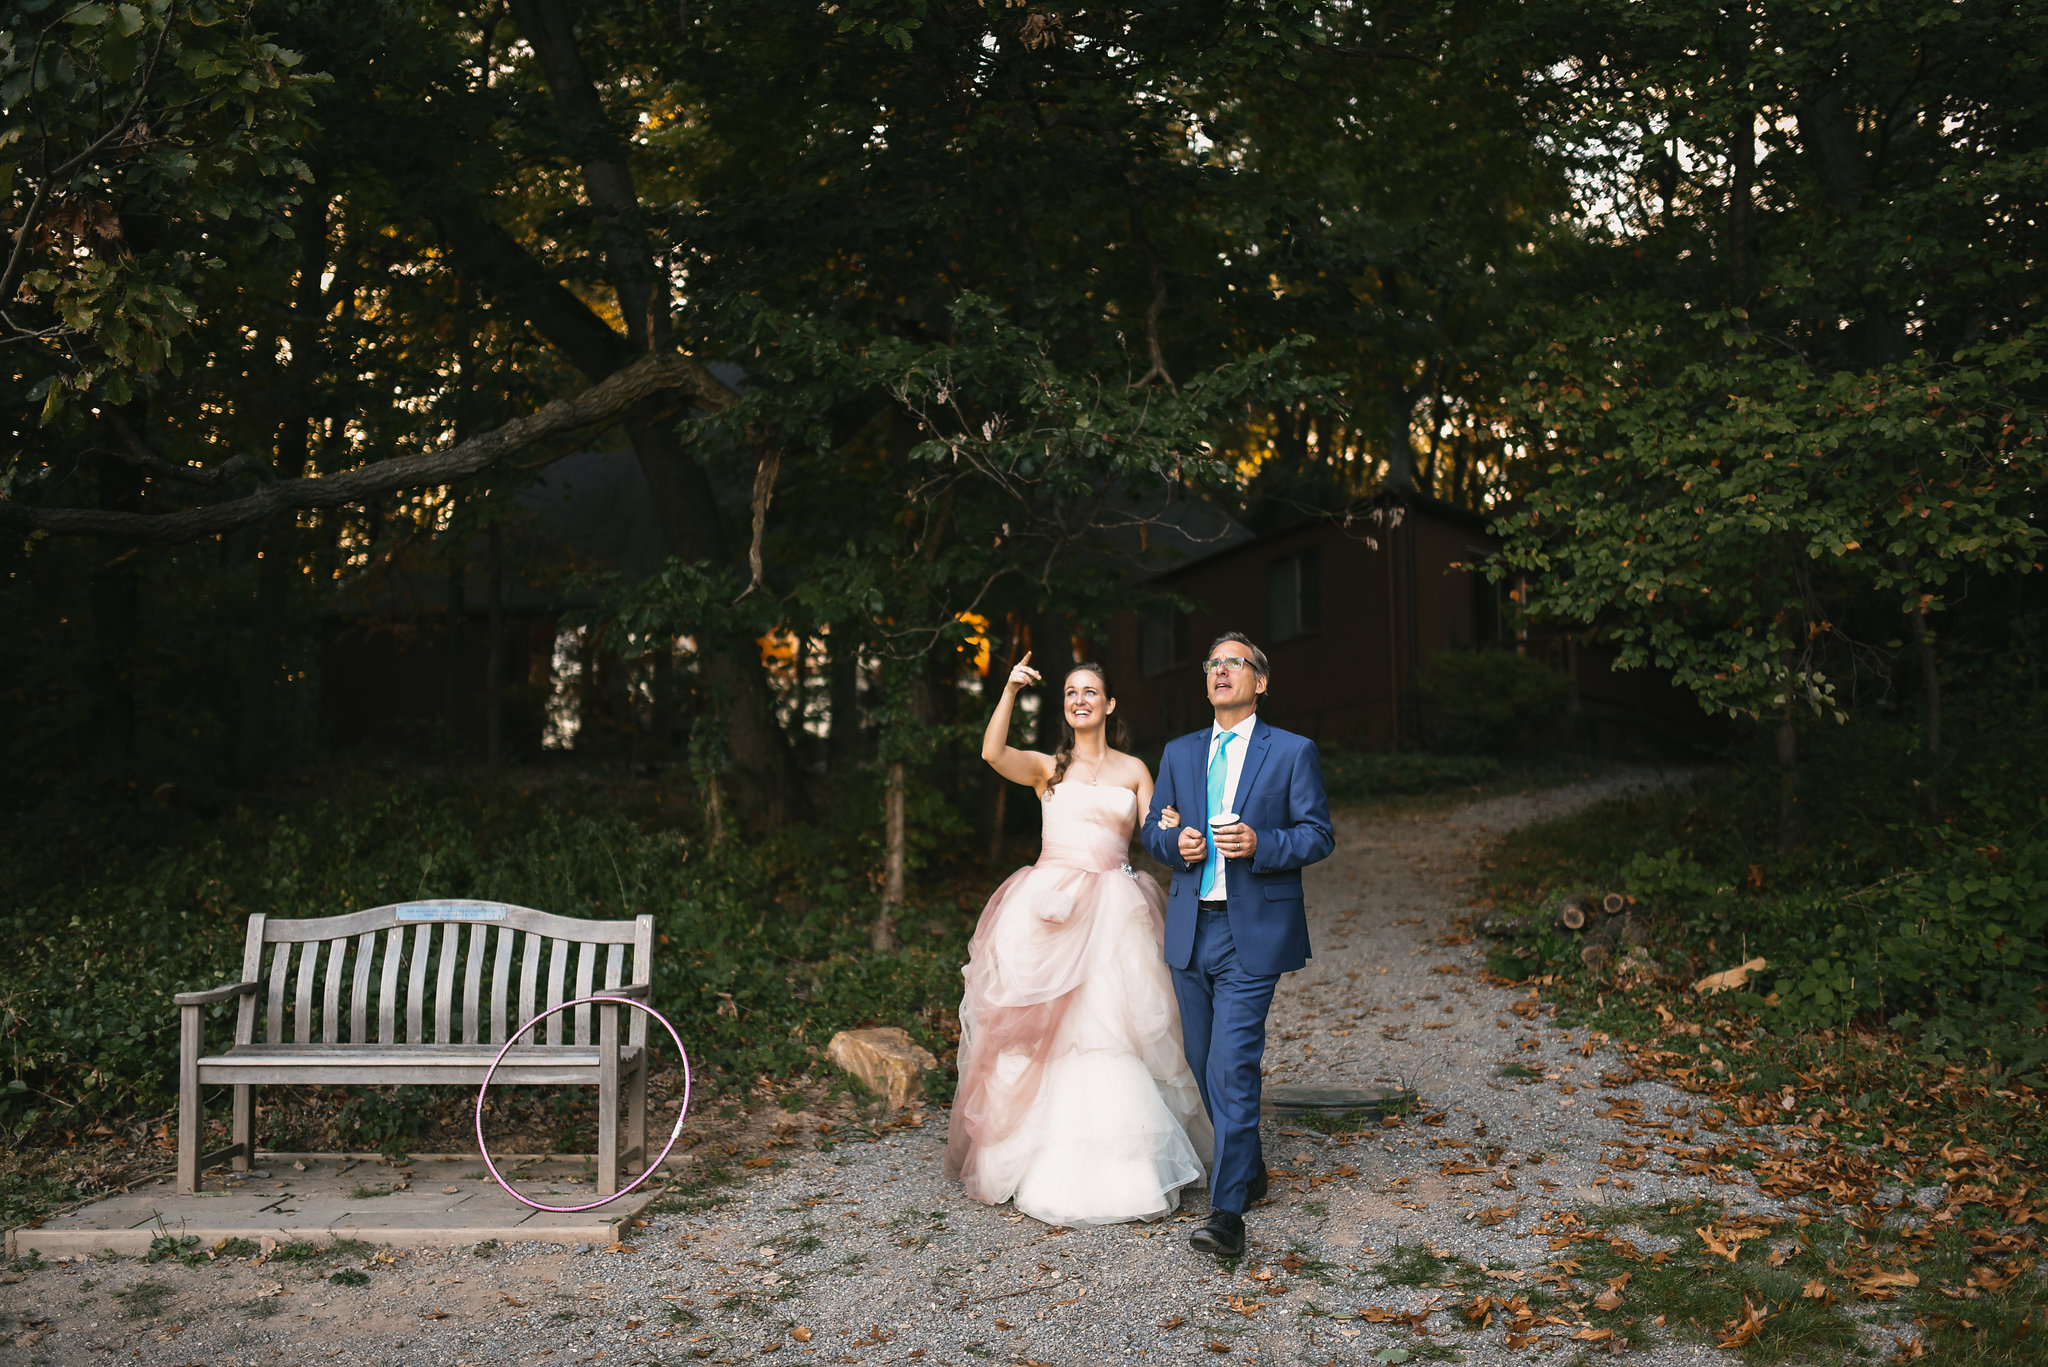 Vintage, DIY, Rustic, Germantown, Baltimore Wedding Photographer, Alternative, Casual, Outdoor Wedding, Church Wedding, Whimsical, Campground, Handmade, Bride and Groom